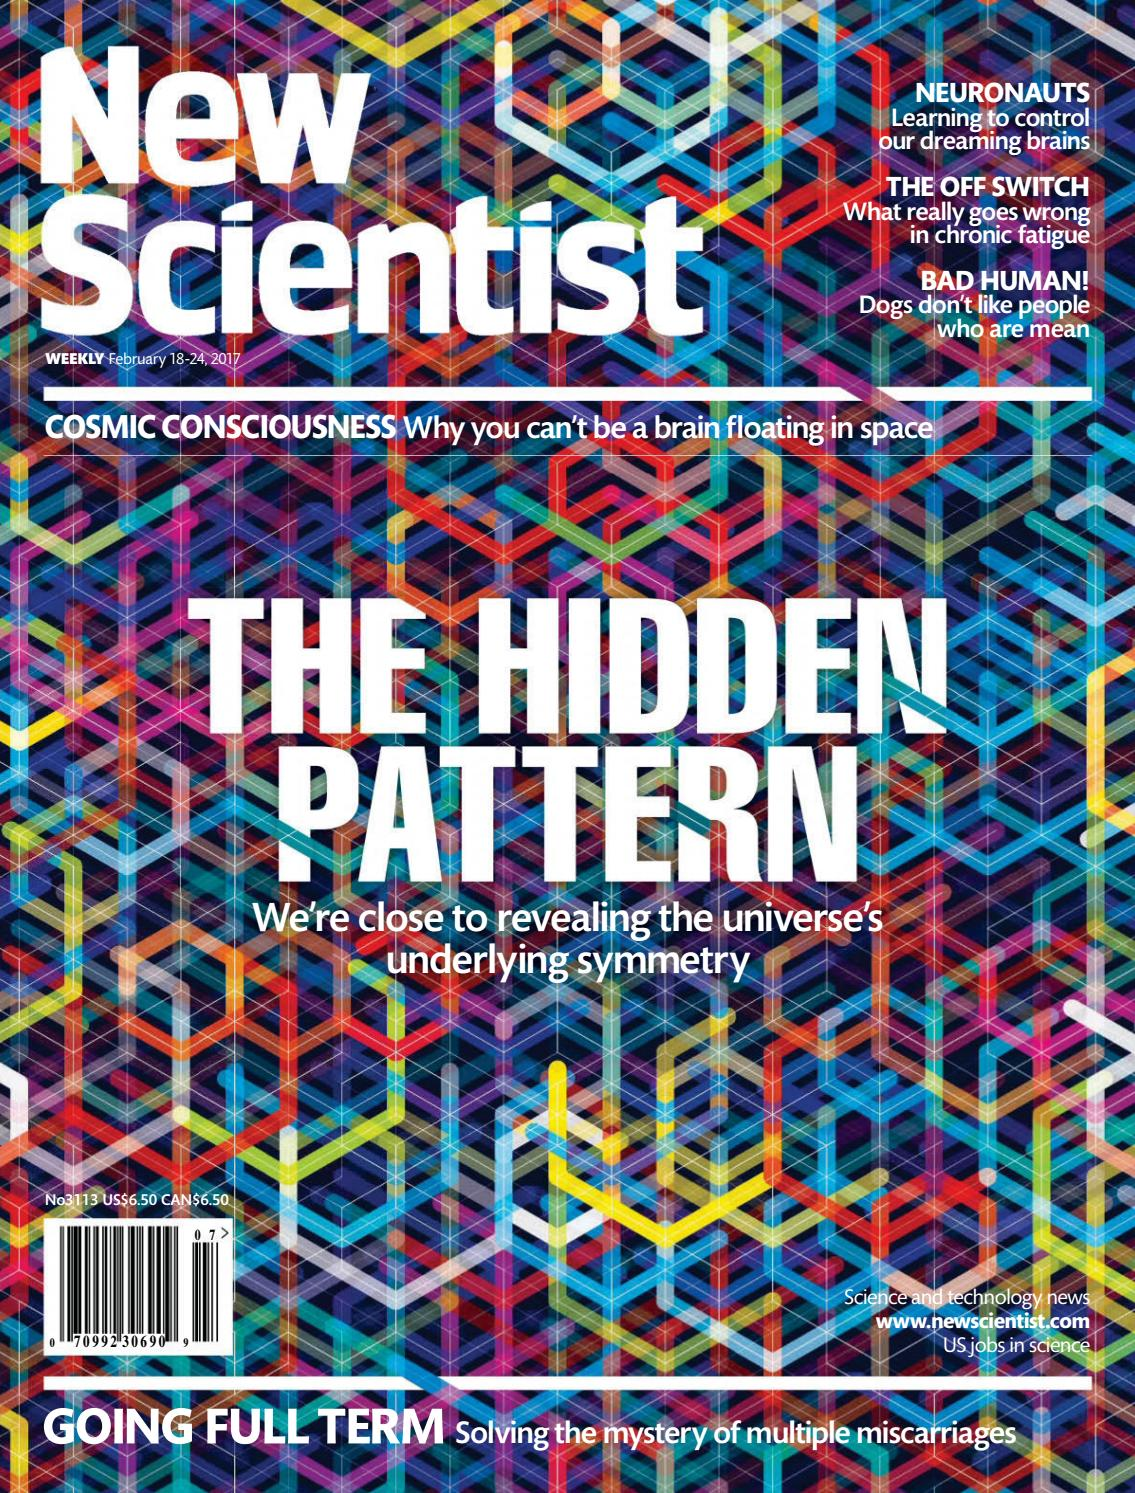 New Scientist February 18 2017 by Javier Jambay - issuu